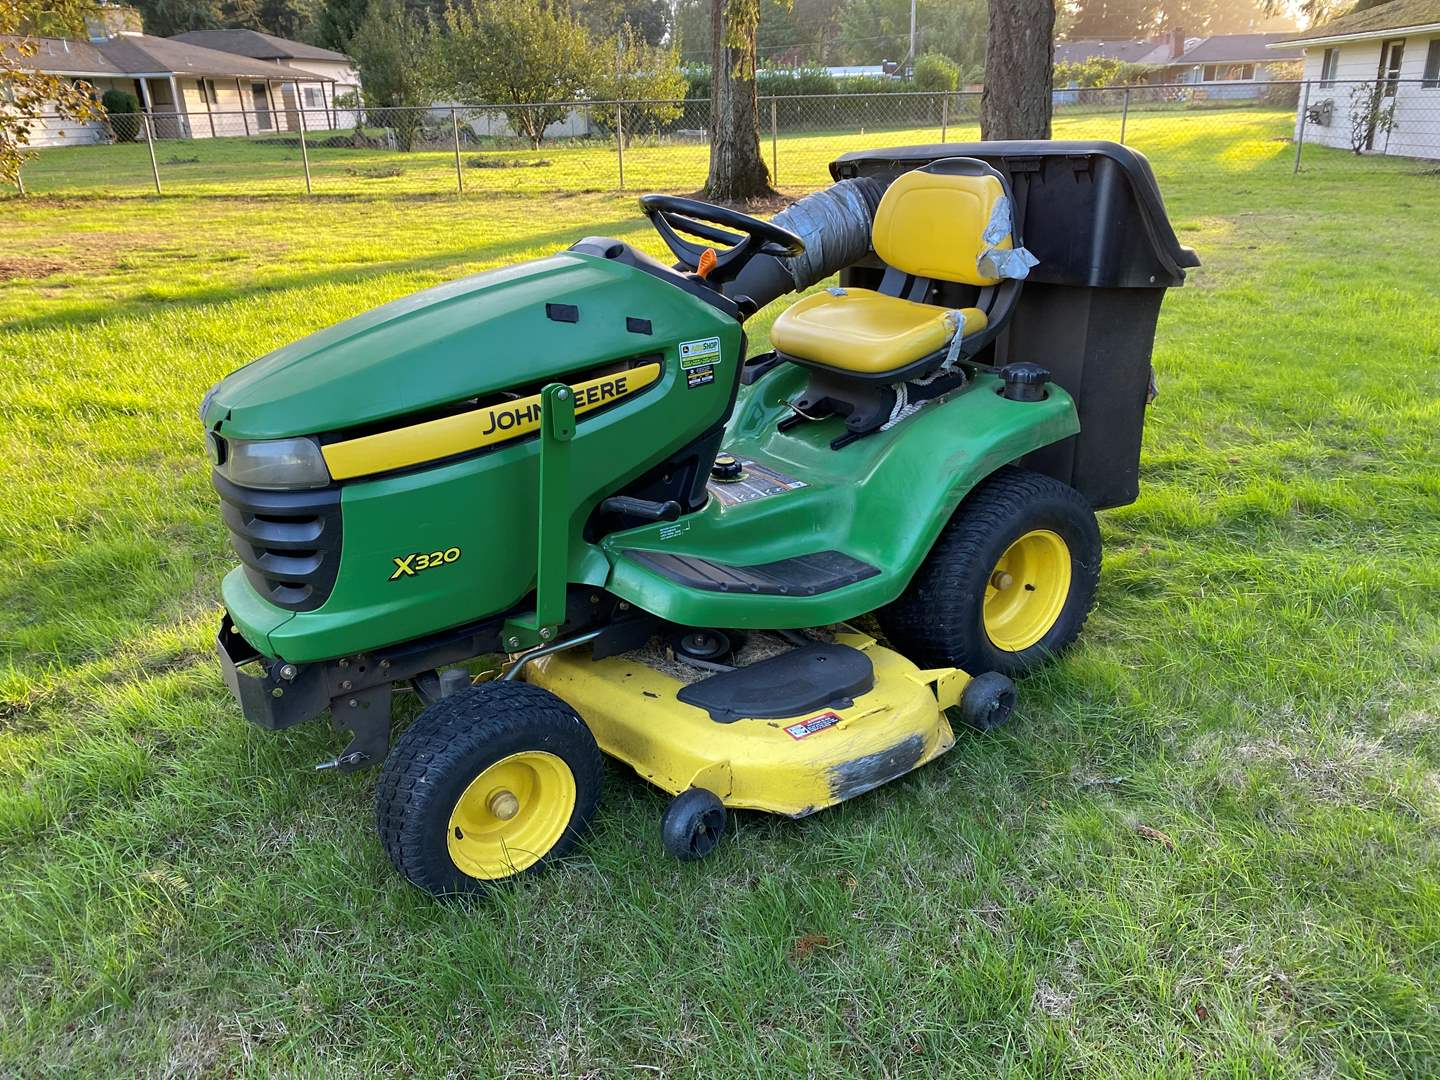 Lot # 1 - John Deere x320 Riding Lawn Mower - Starts Right Up & Runs Great - Please See Video!!  (main image)